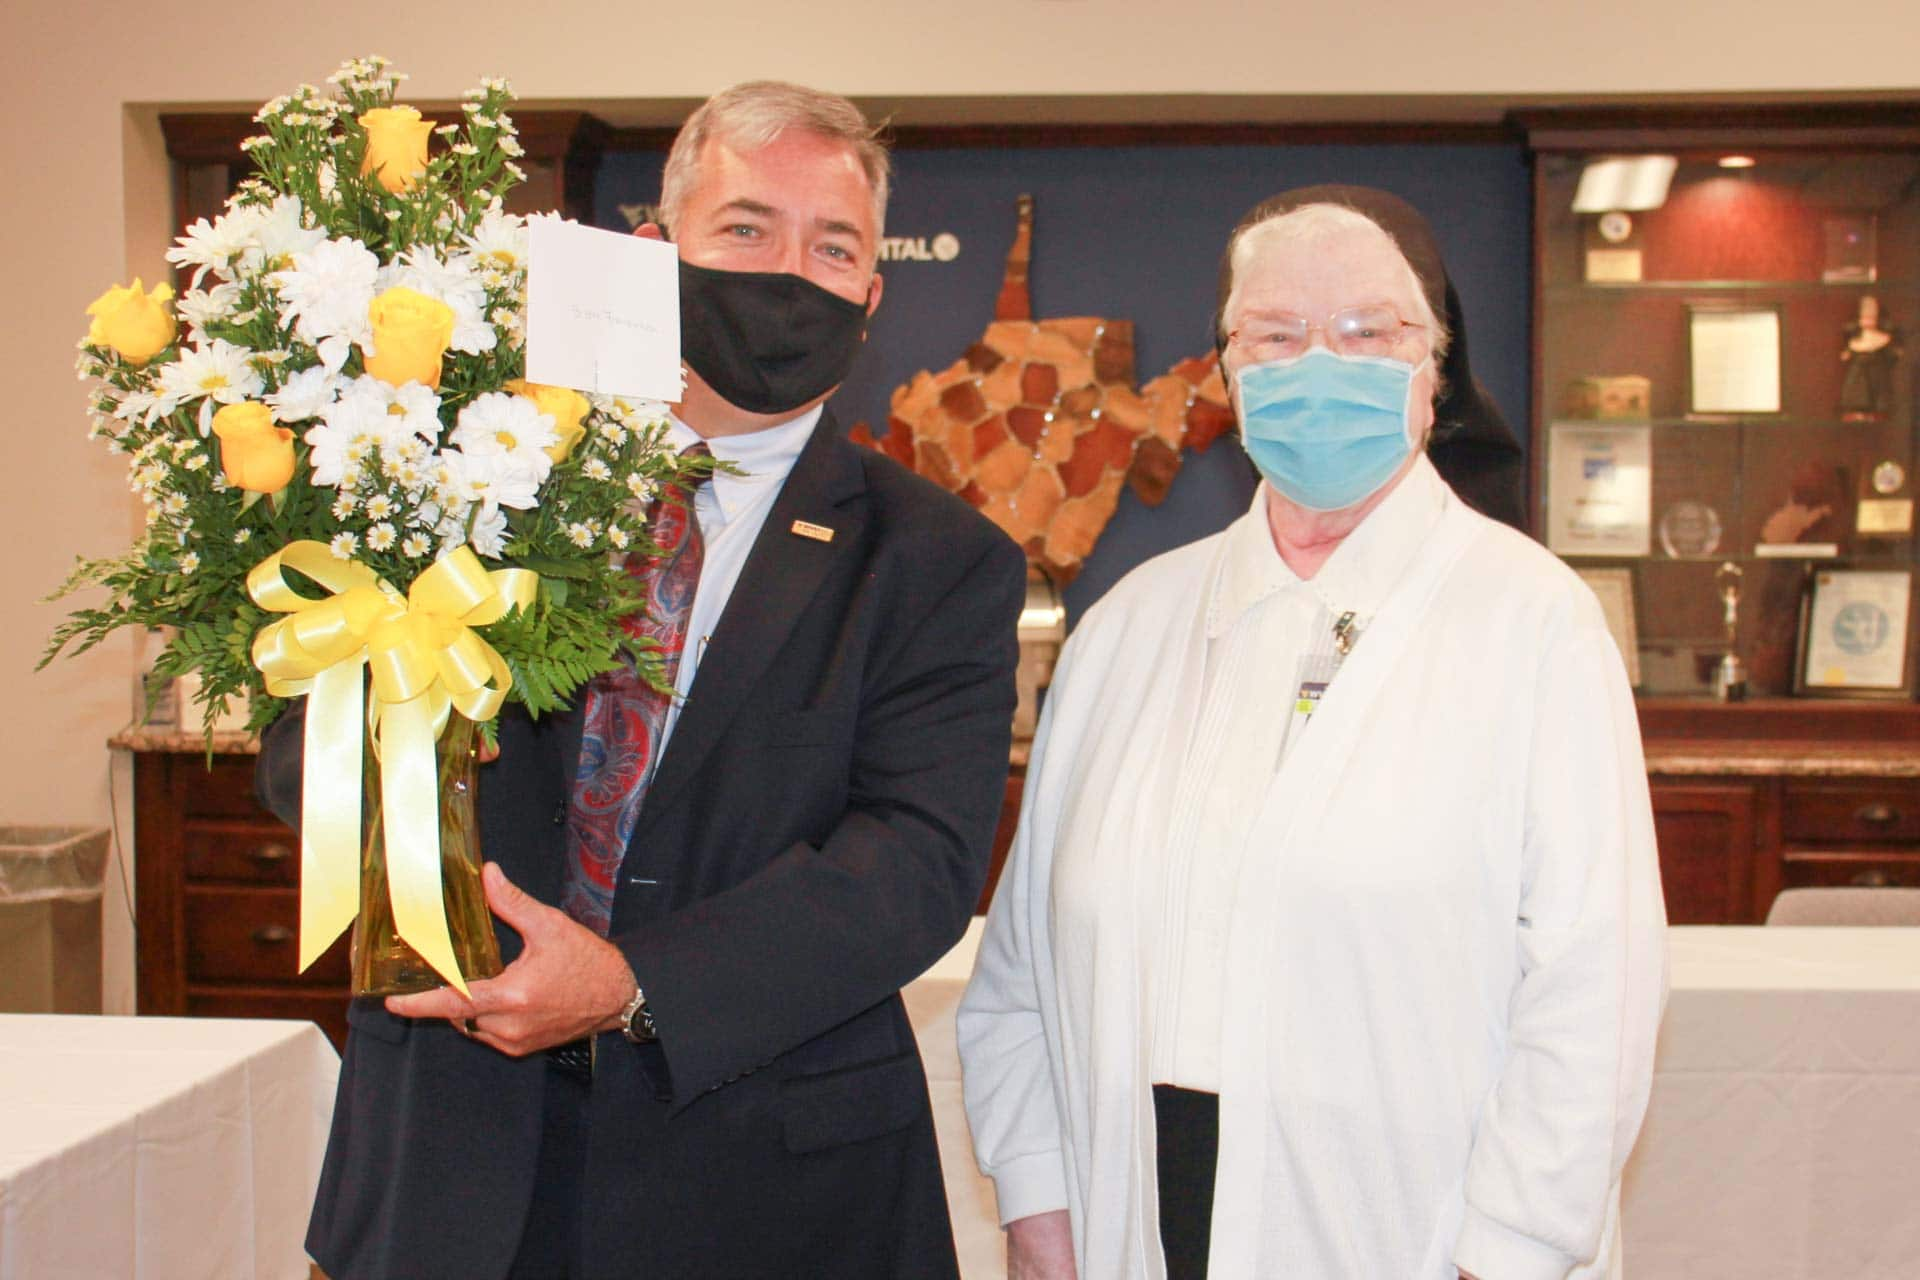 St. Joseph's Hospital honors Sister Francesca Lowis, SAC on her 60th Jubilee